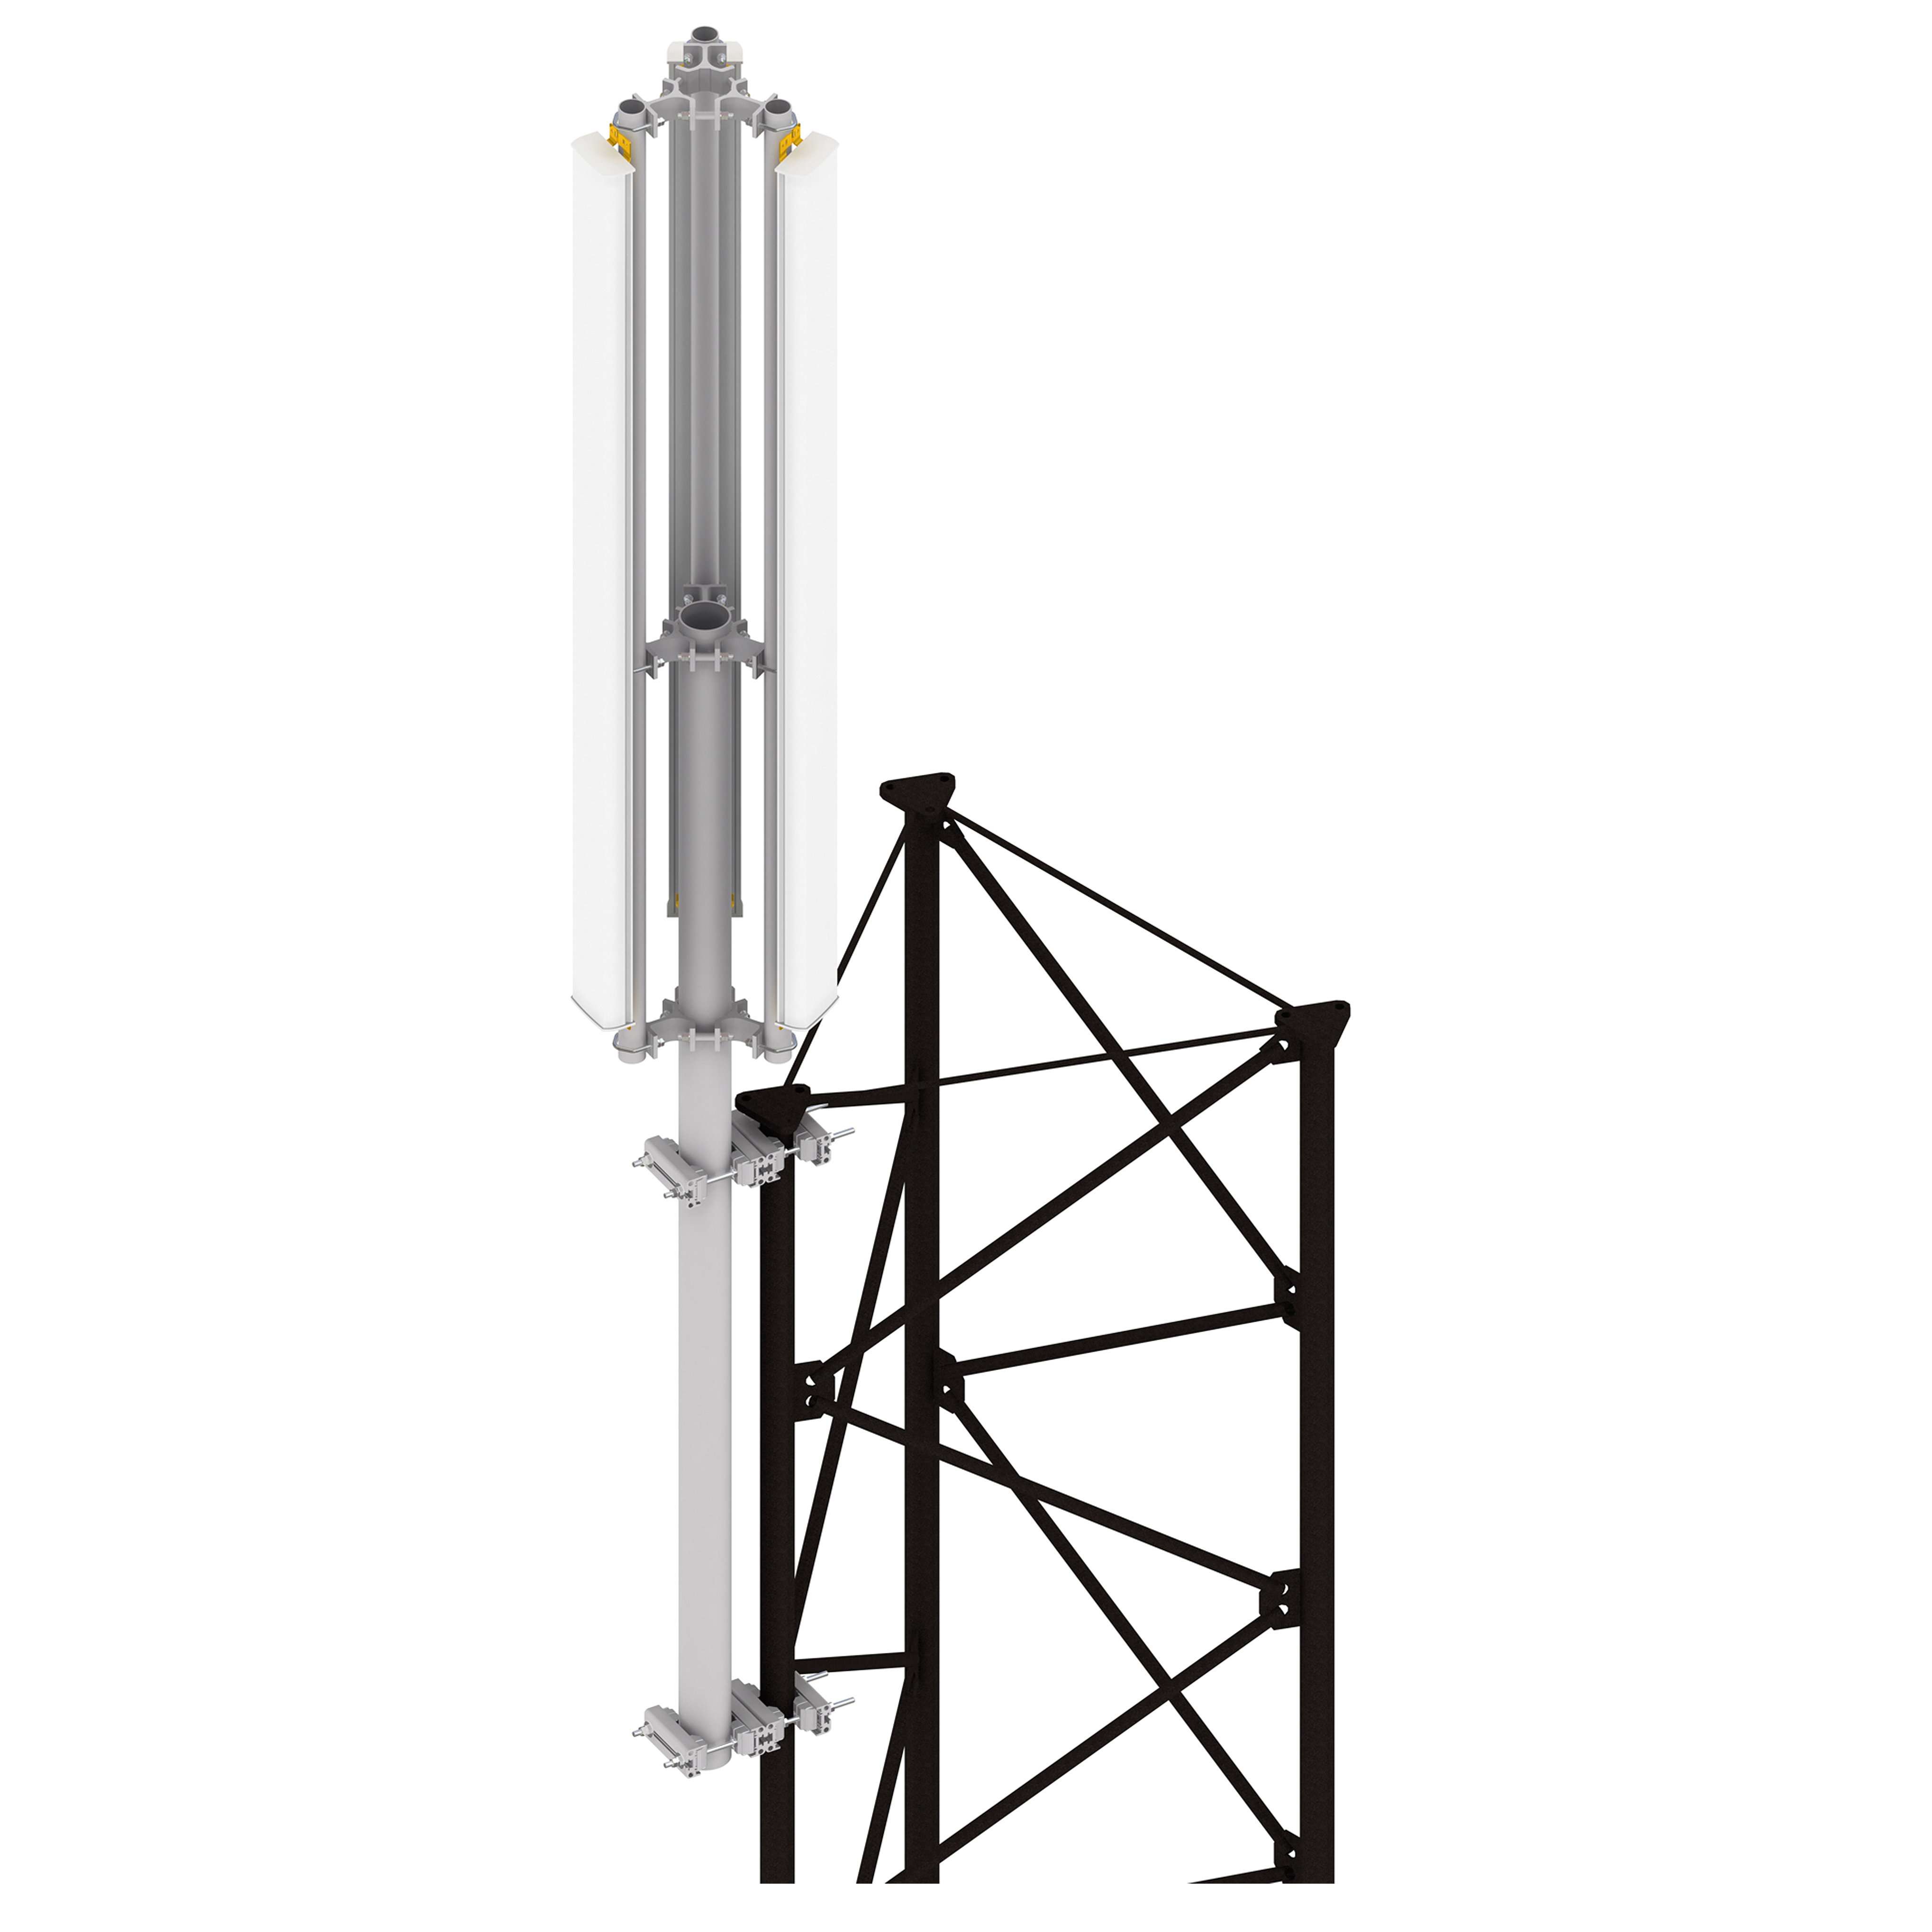 Top Spire Antenna Supports